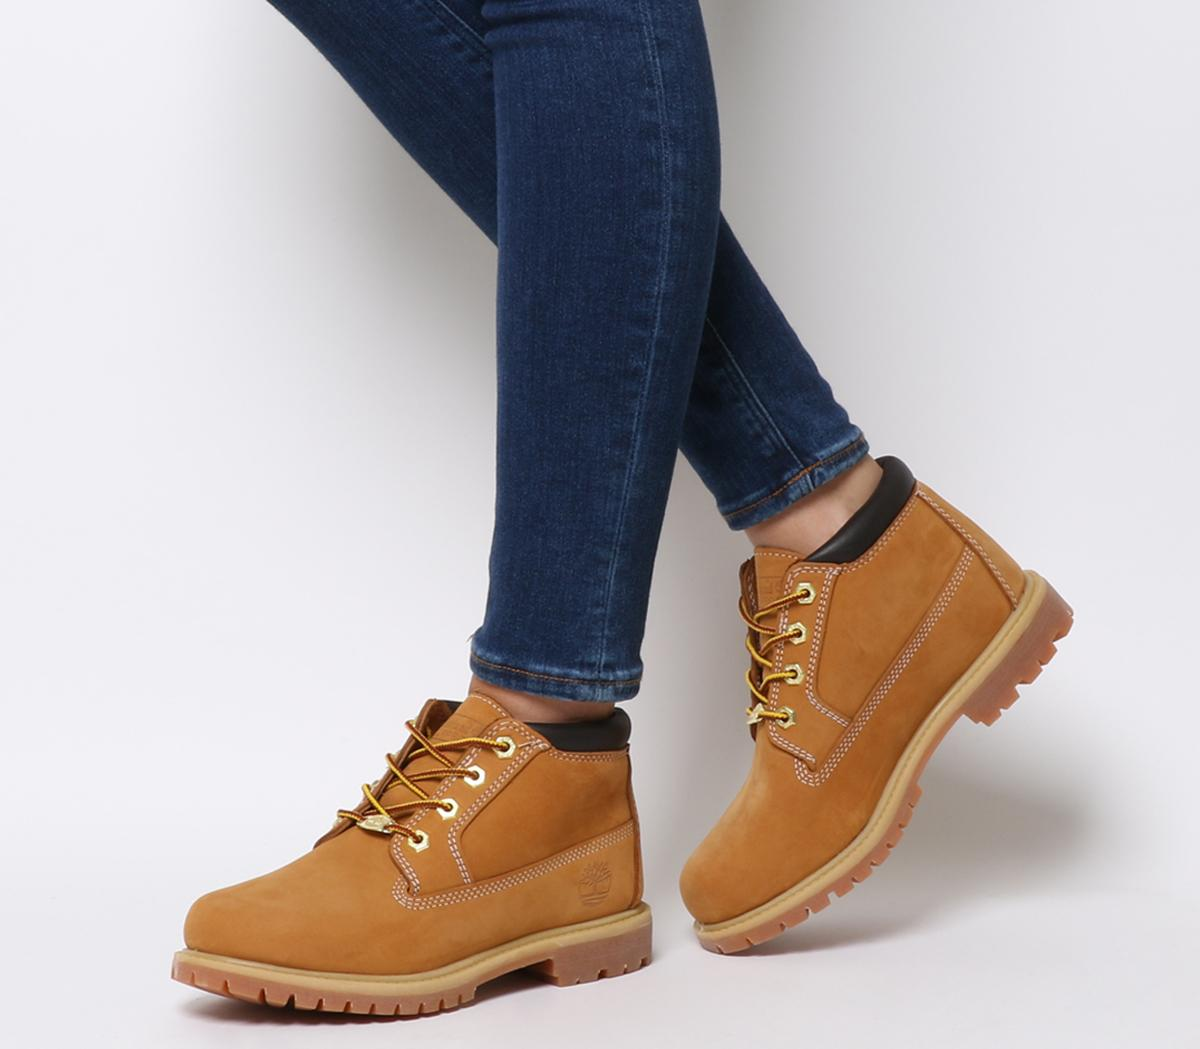 Womens Timberland Tan Leather Lace Up Ankle Boots Size UK 4 *Ex Display | eBay